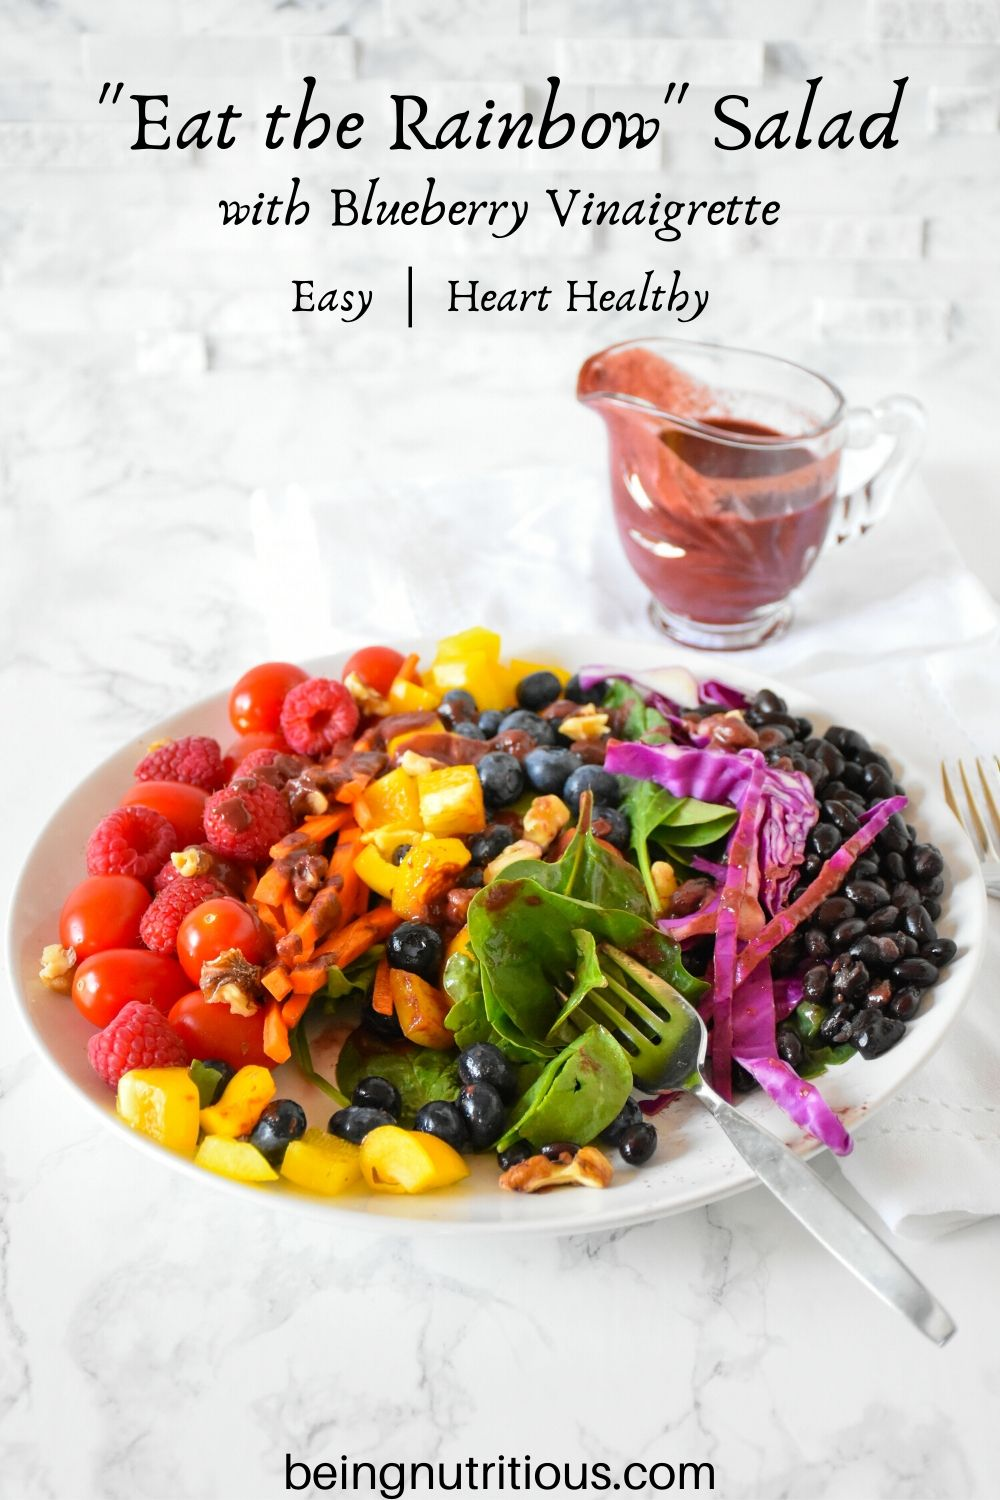 Rainbow salad on a plate, with blueberry vinaigrette dressing poured on, and several bites take from salad.